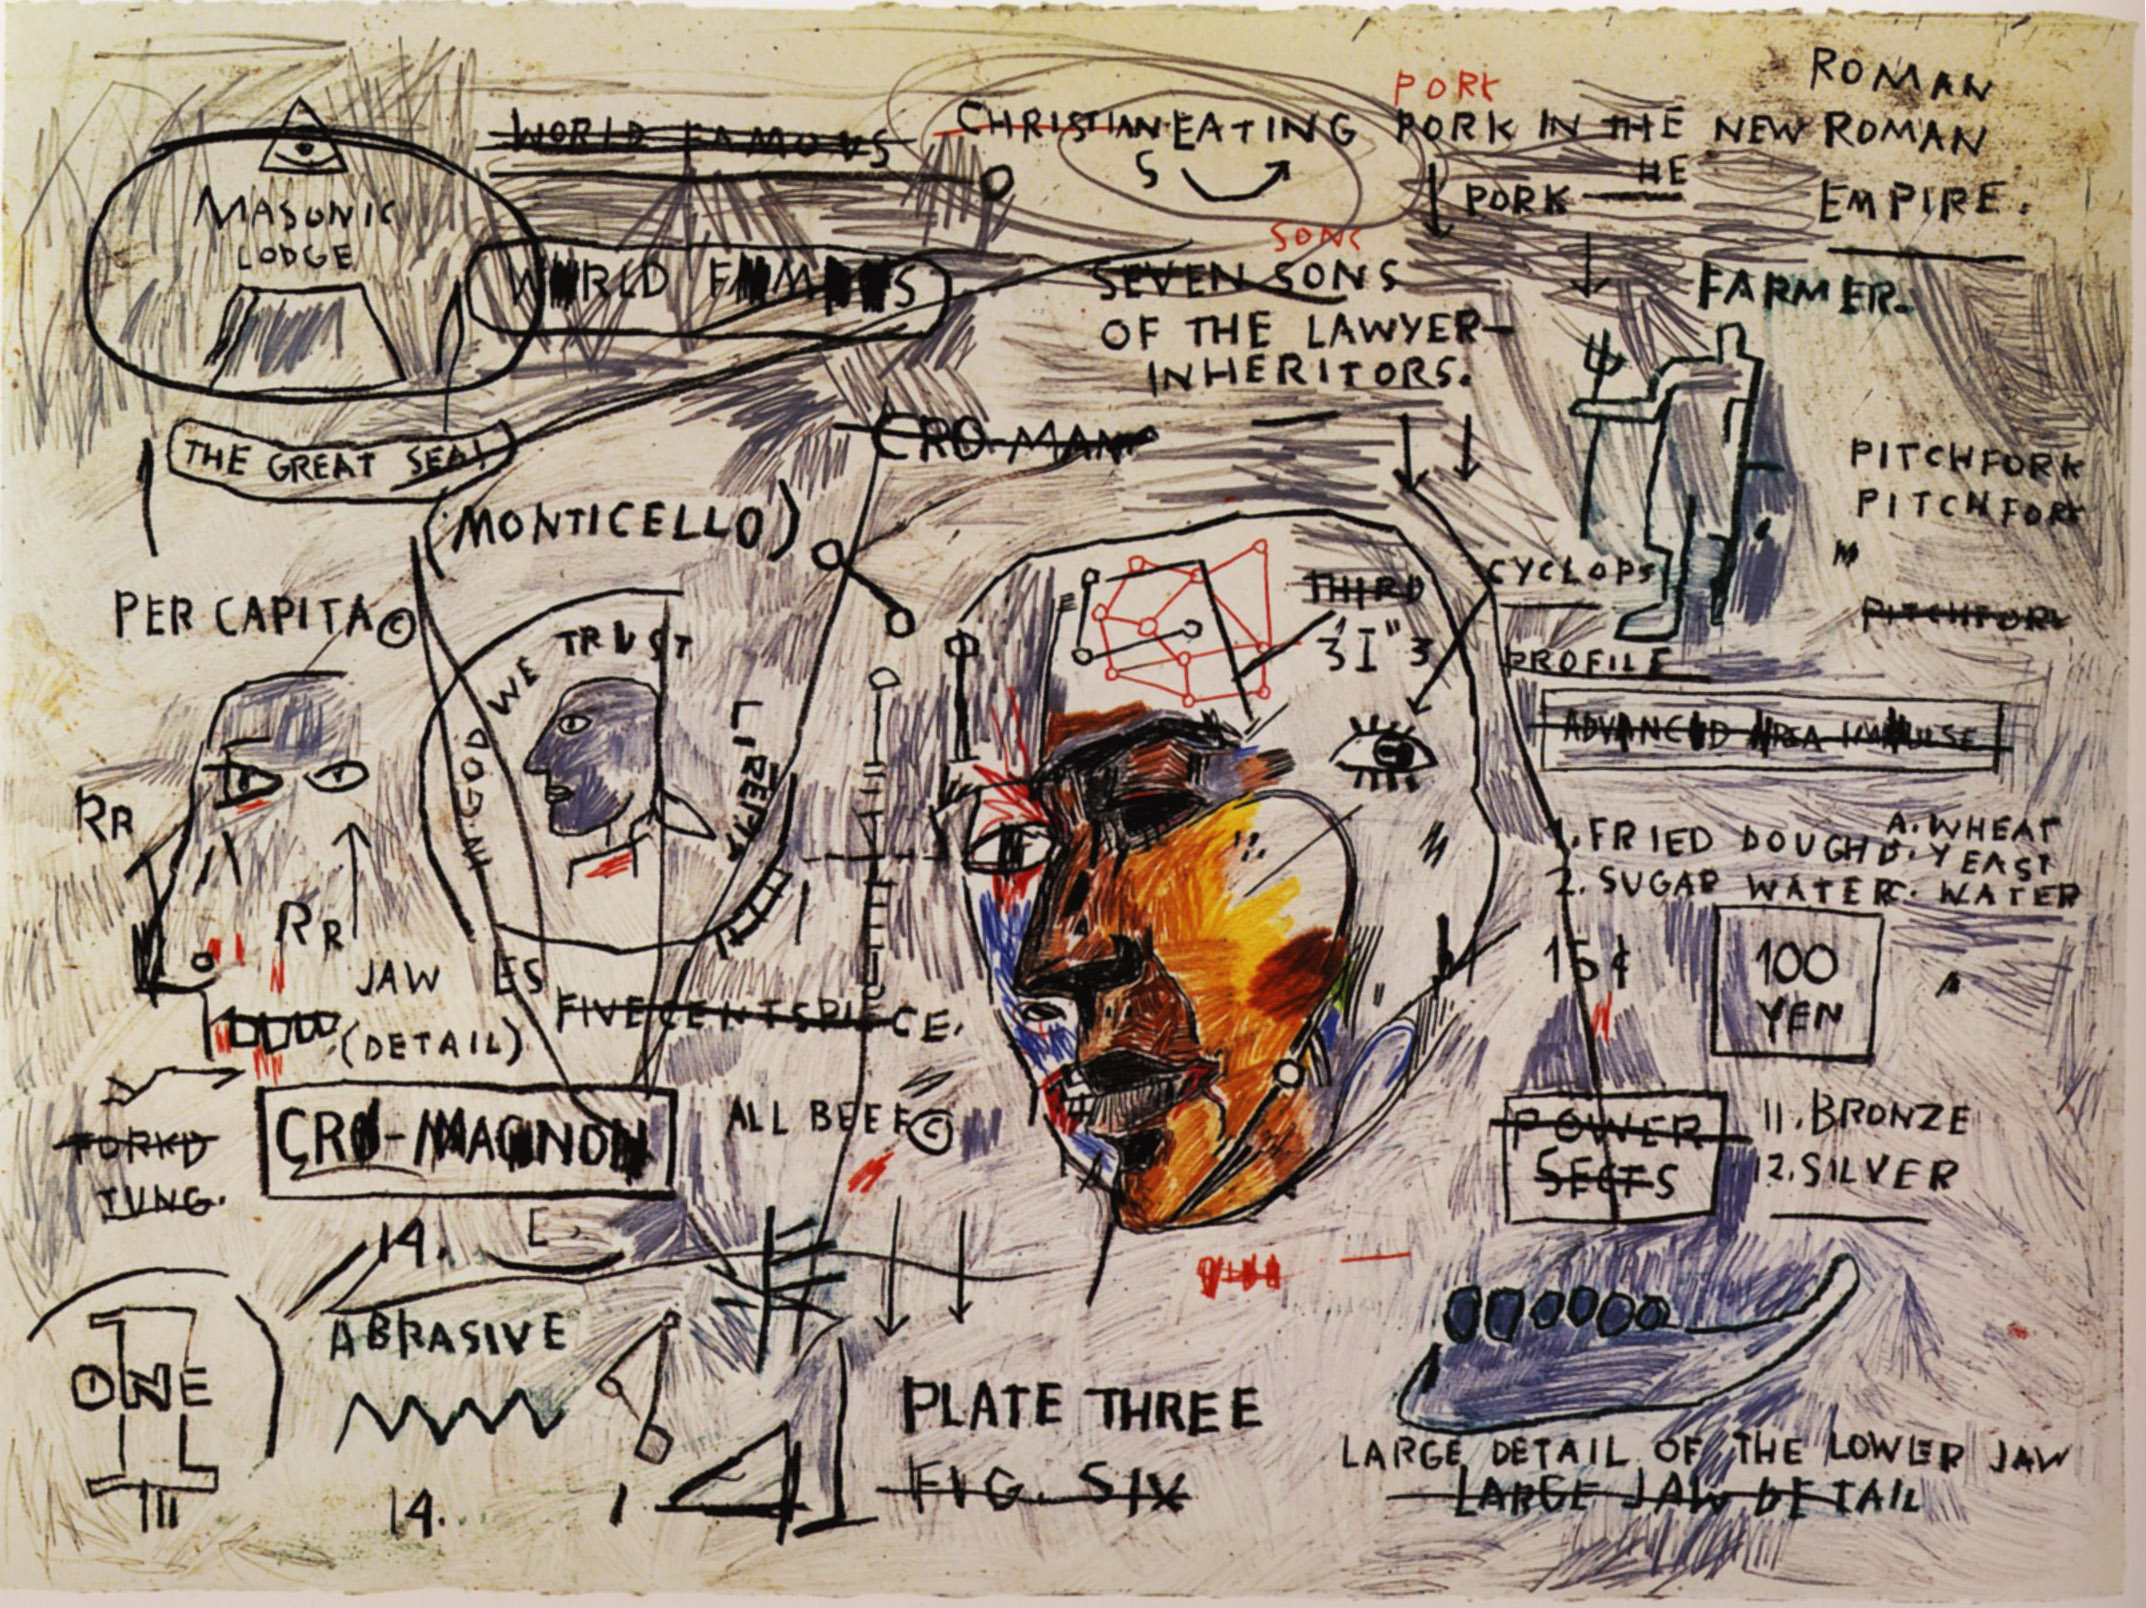 Monticello - Jean-Michel Basquiat - WikiPaintings.